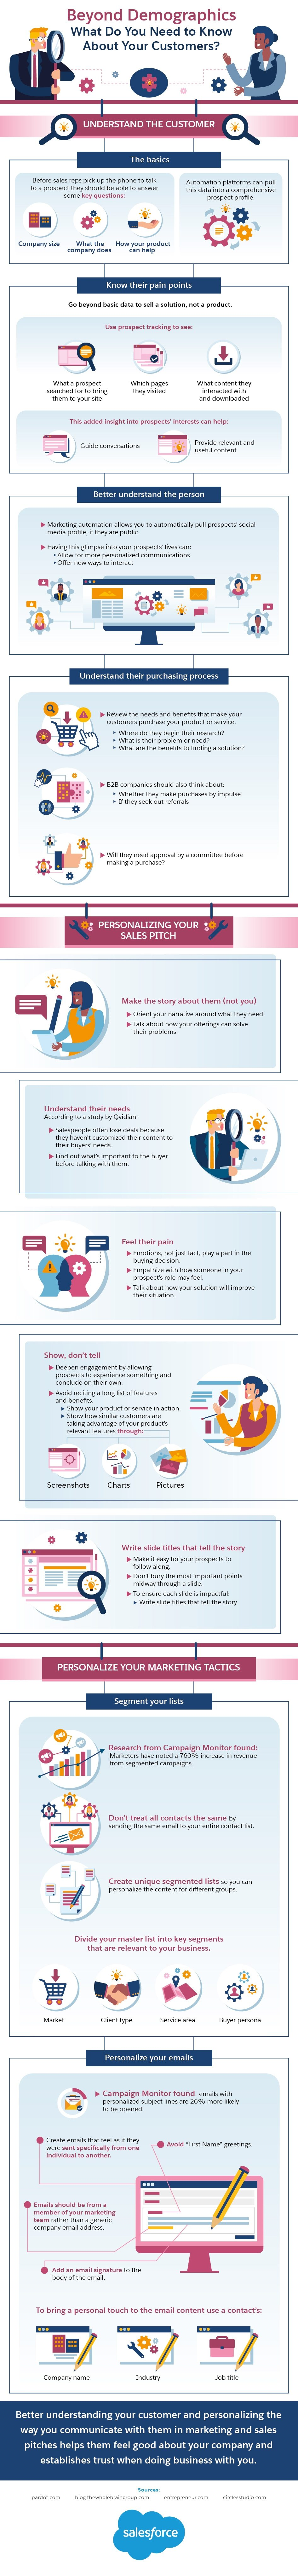 How to Utilize Social Data to Enhance Your Marketing Process [Infographic] | Social Media Today